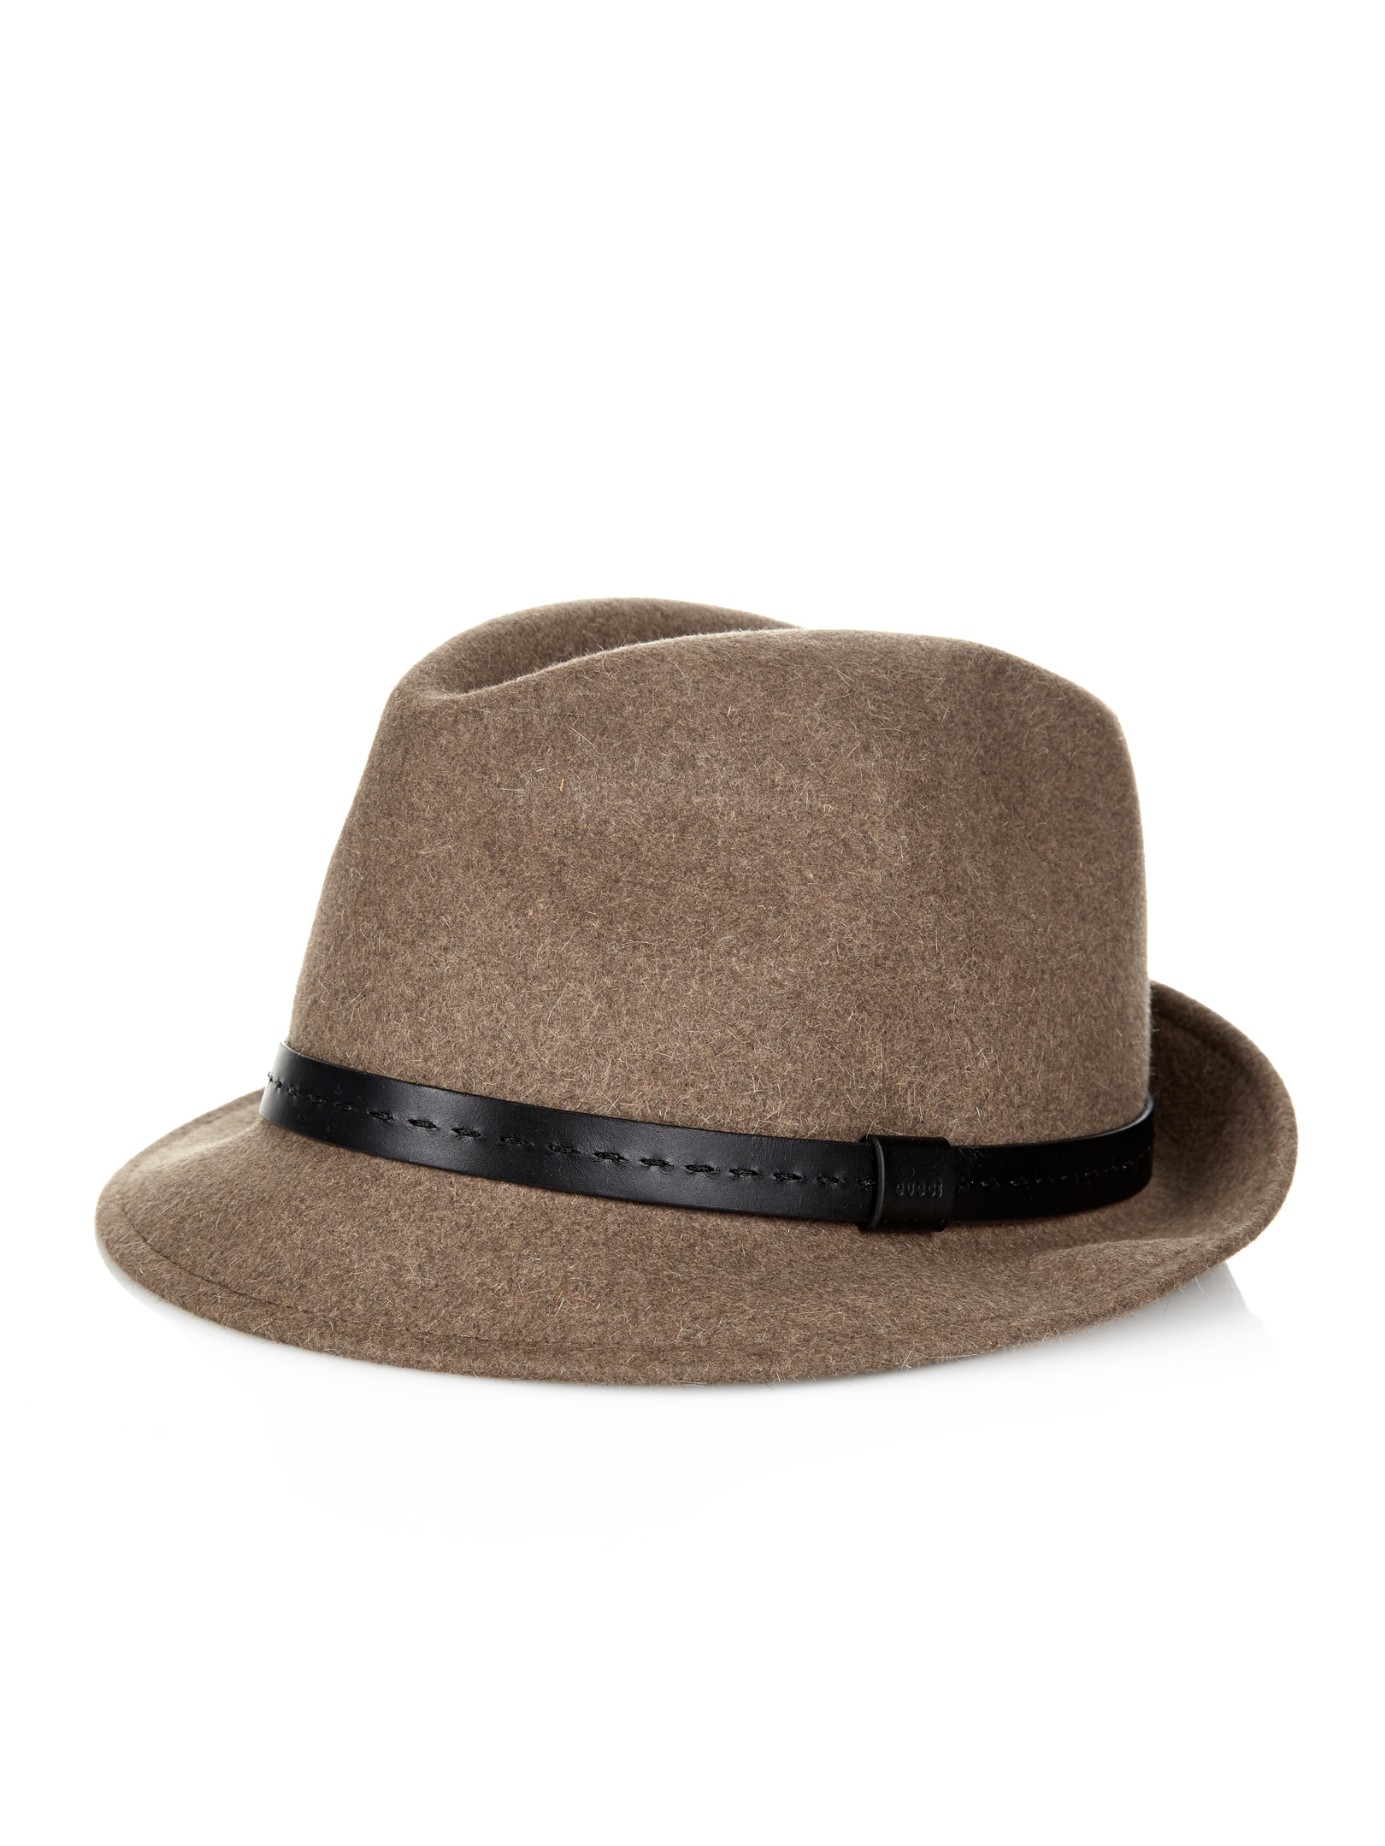 885e1abecf2 Gucci Leather-Band Felt Trilby in Natural for Men - Lyst